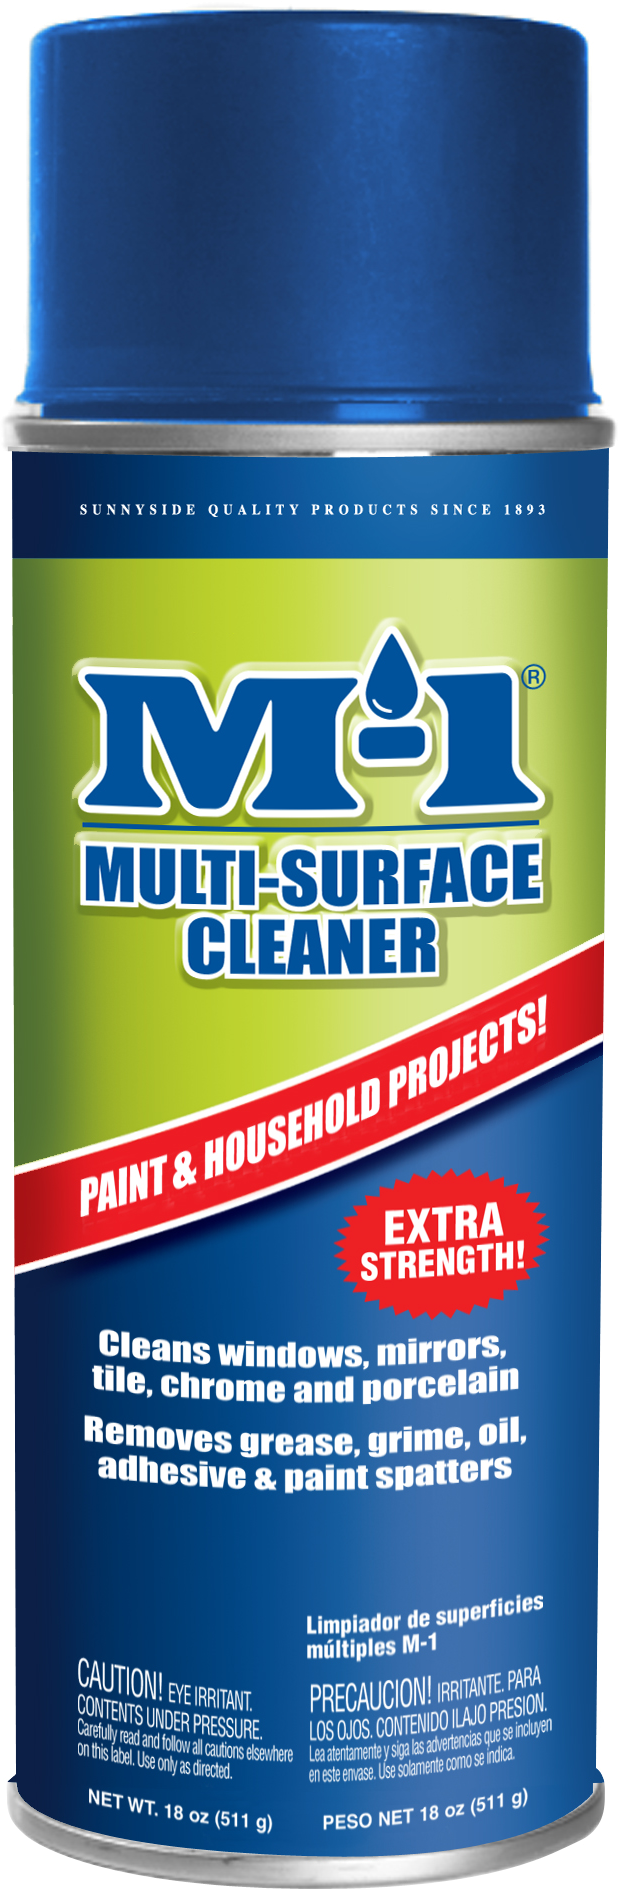 M-1 MULTI SURFACE CLEANER Product Image